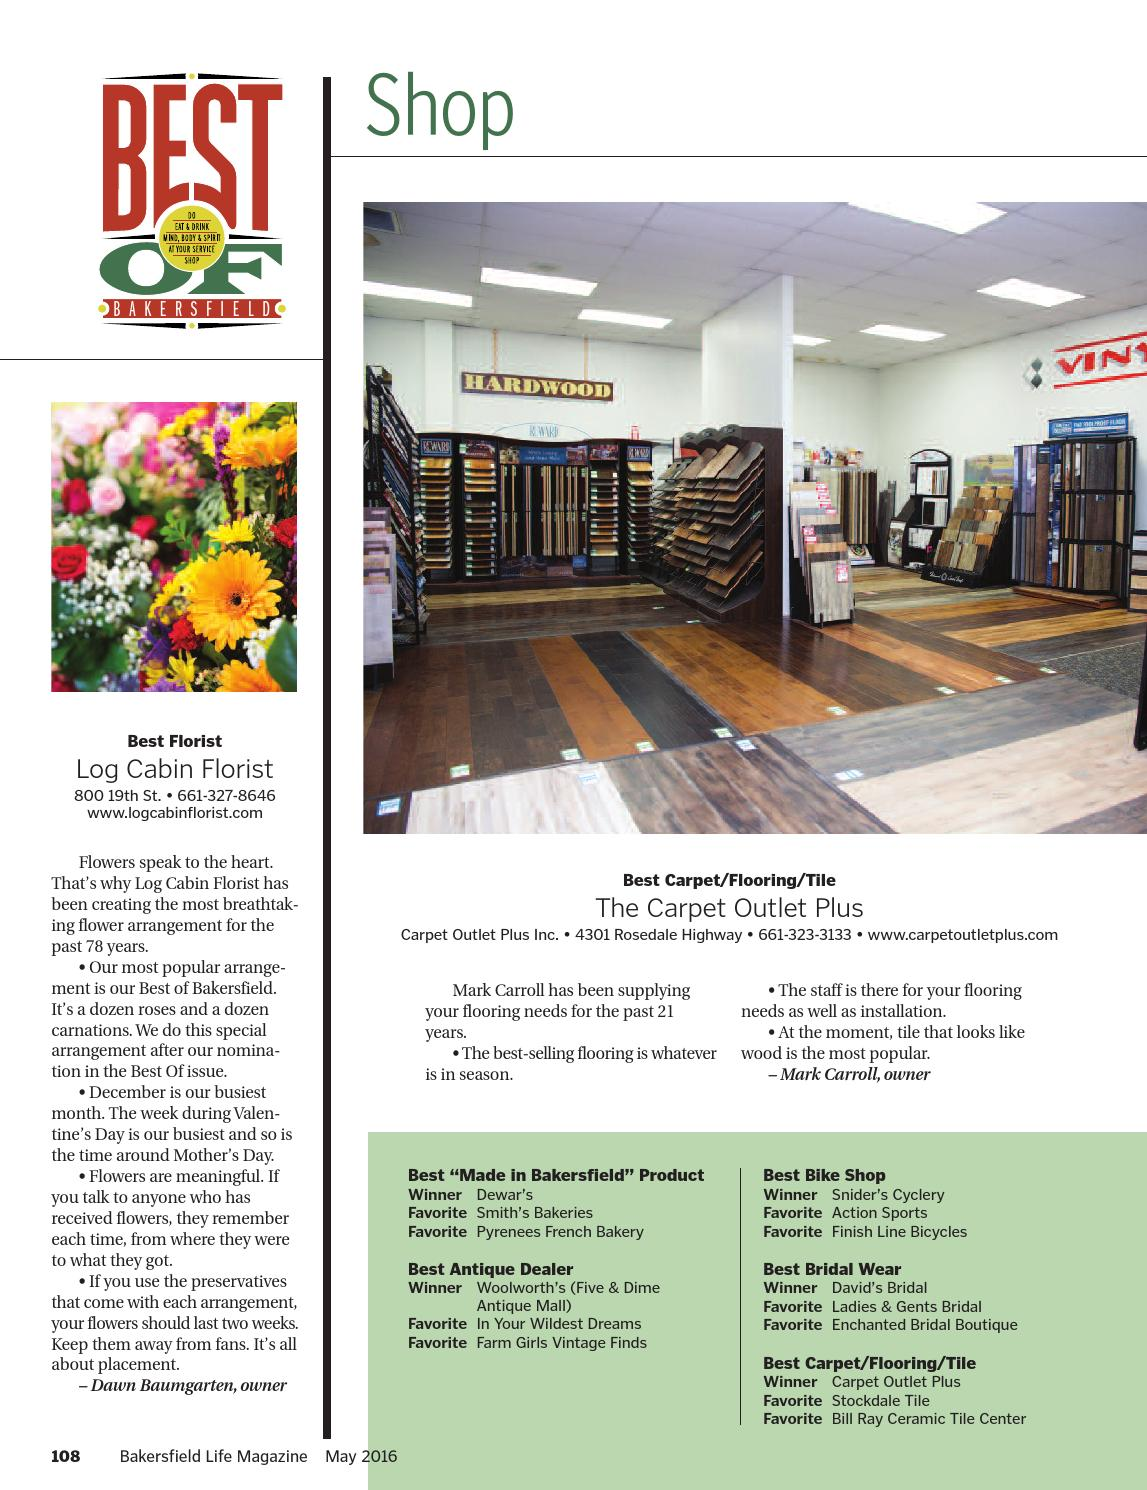 Bakersfield life magazine may 2016 by tbc media specialty for Log cabin florist bakersfield